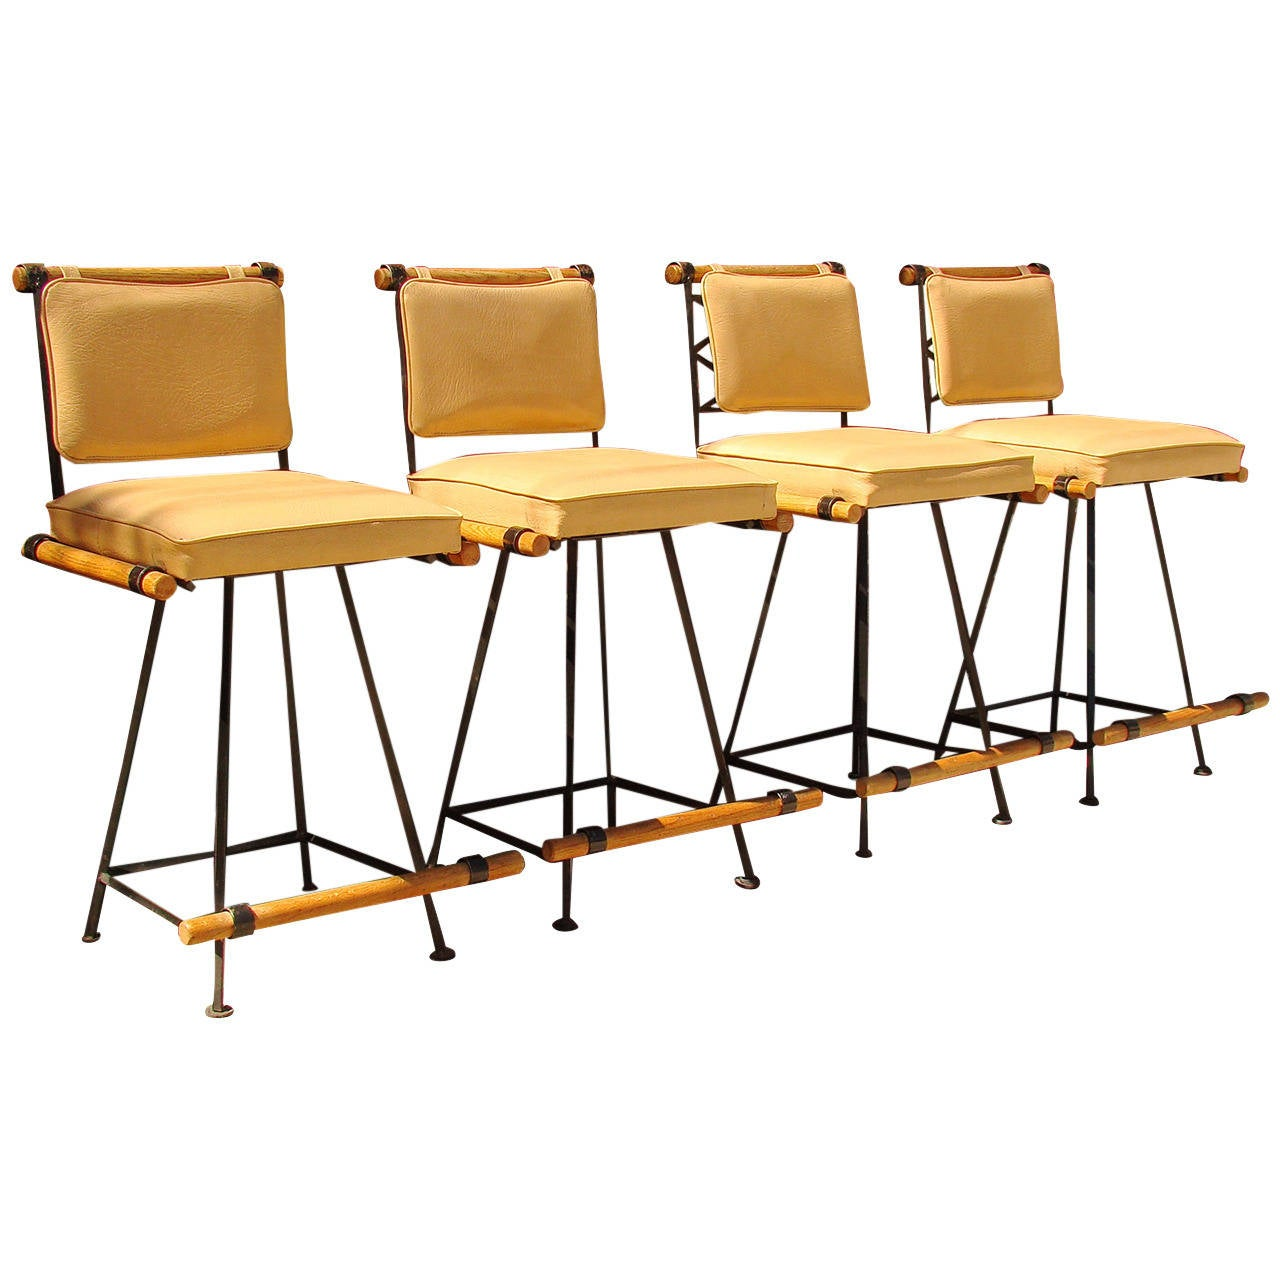 Four Counter Stools by Cleo Baldon Vintage Originals at